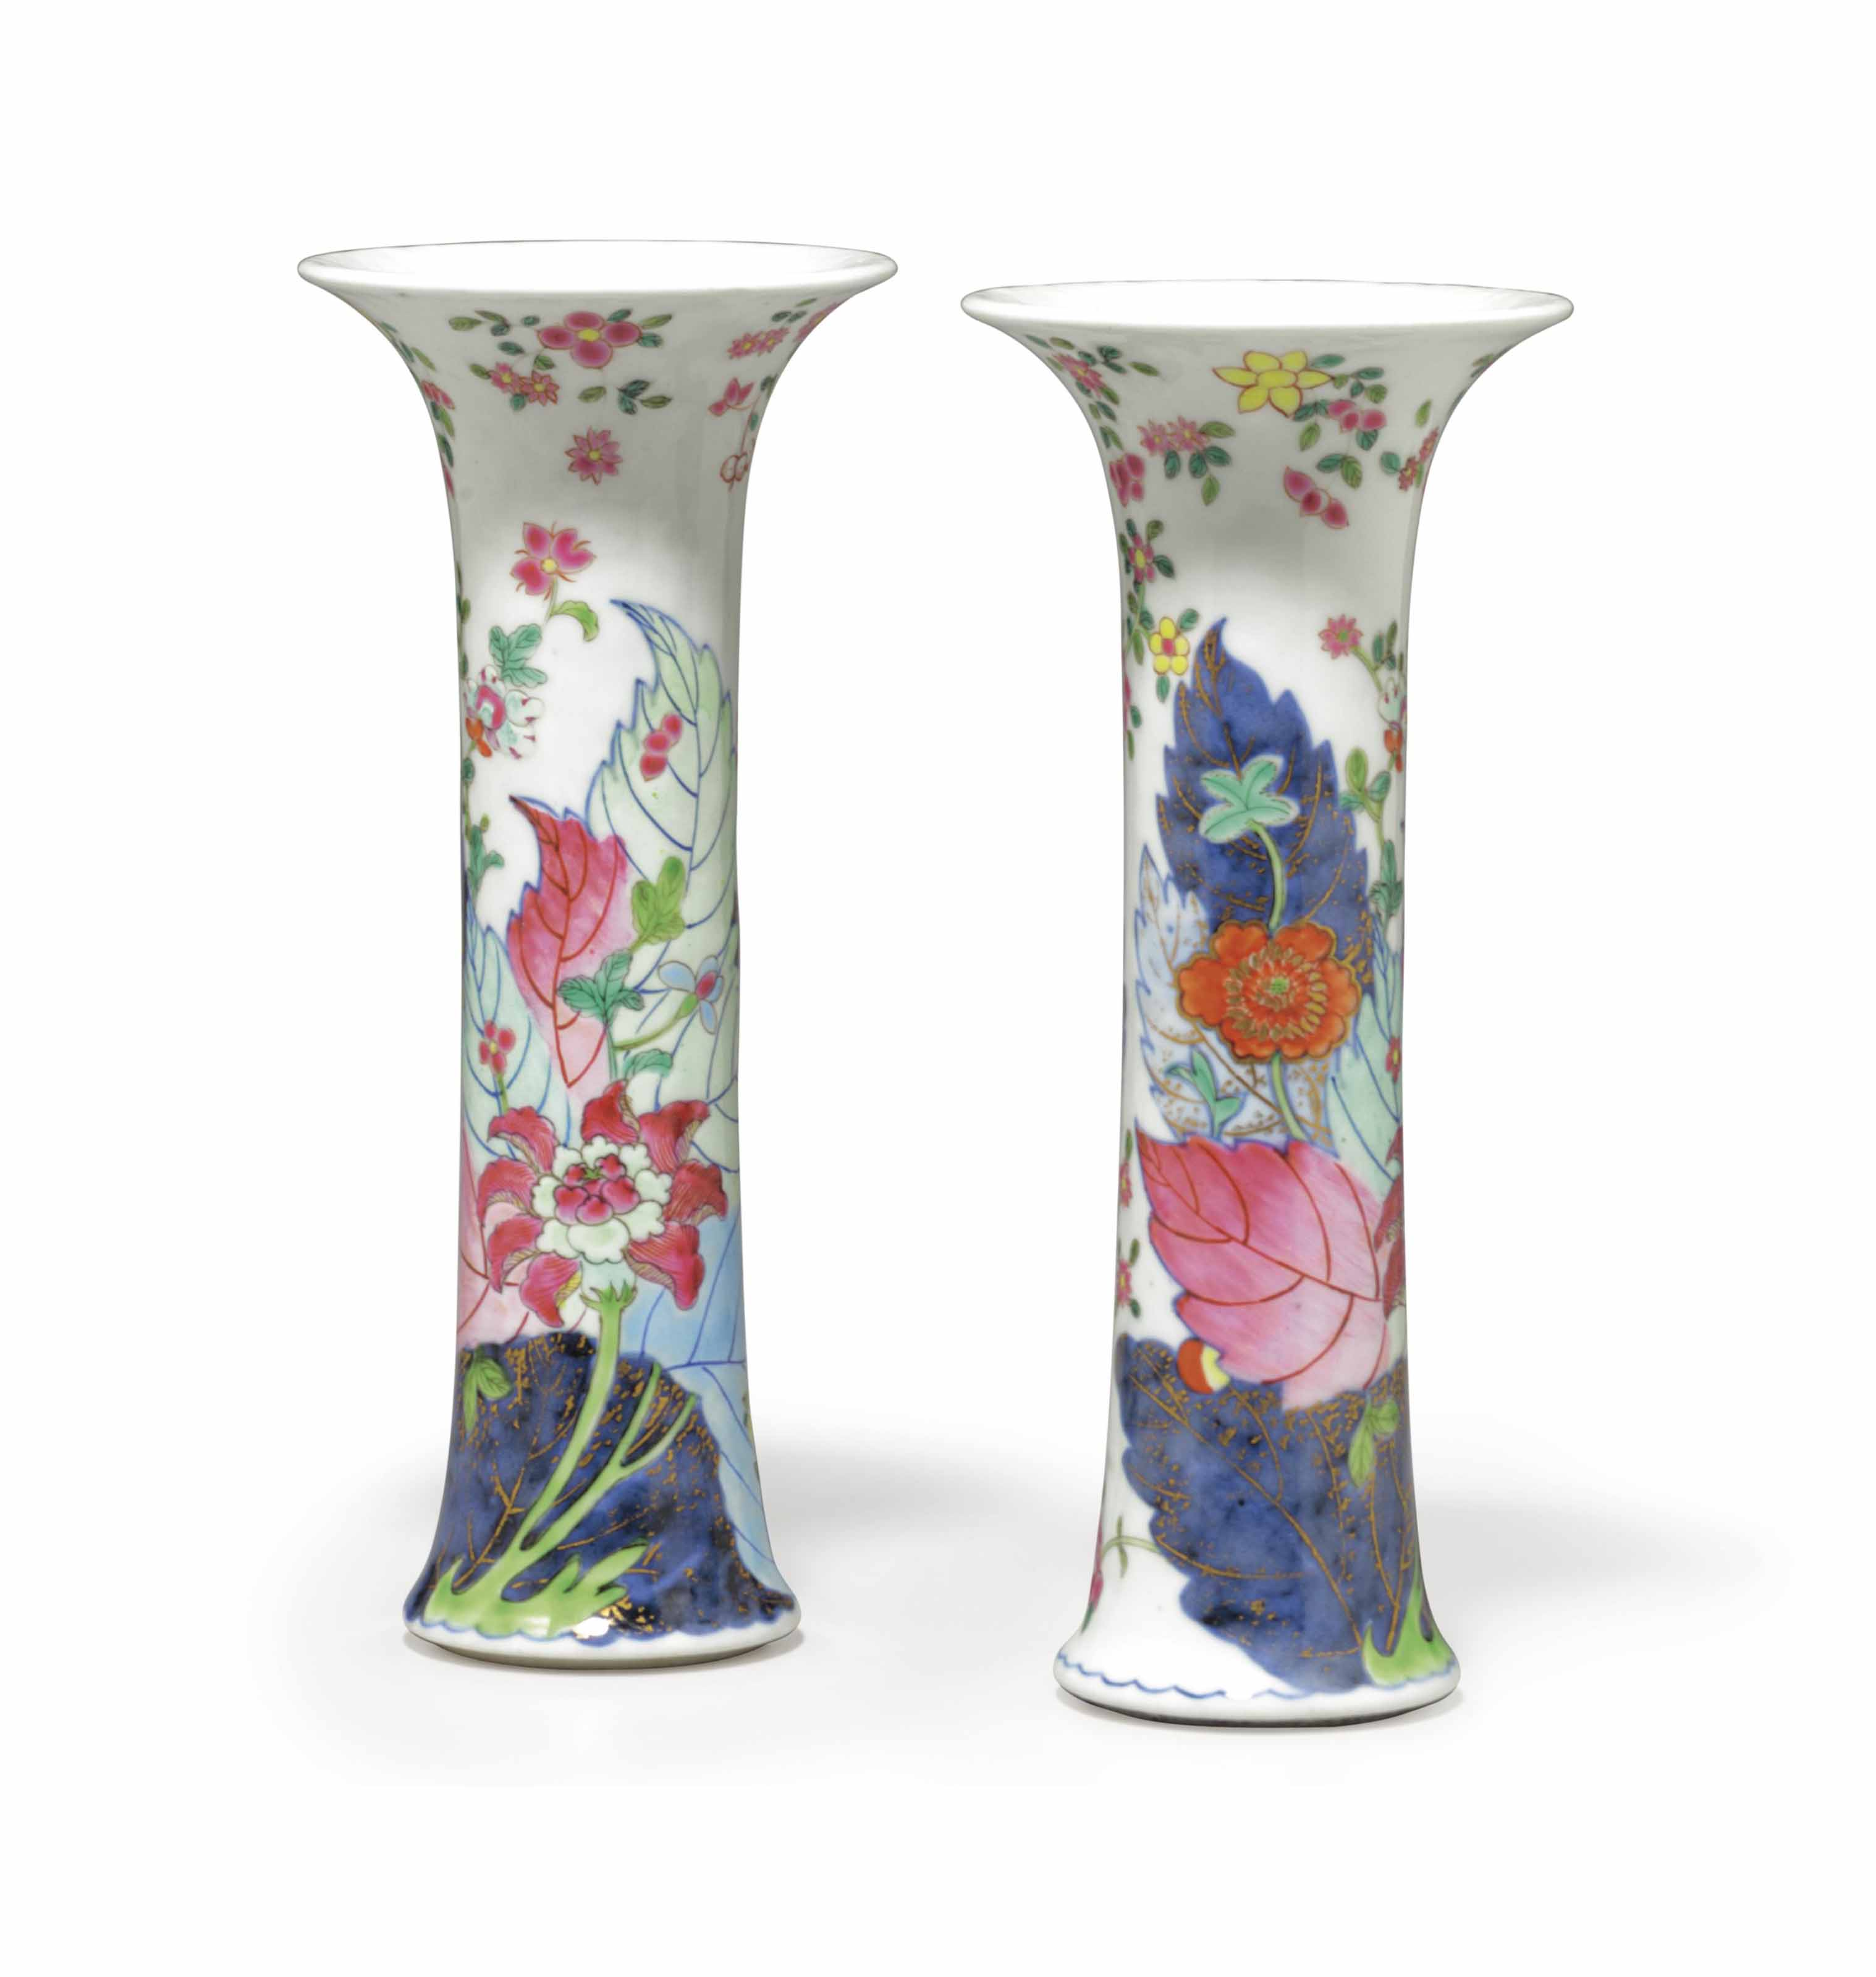 A PAIR OF CHINESE EXPORT PORCELAIN 'TOBACCO LEAF' BEAKERS